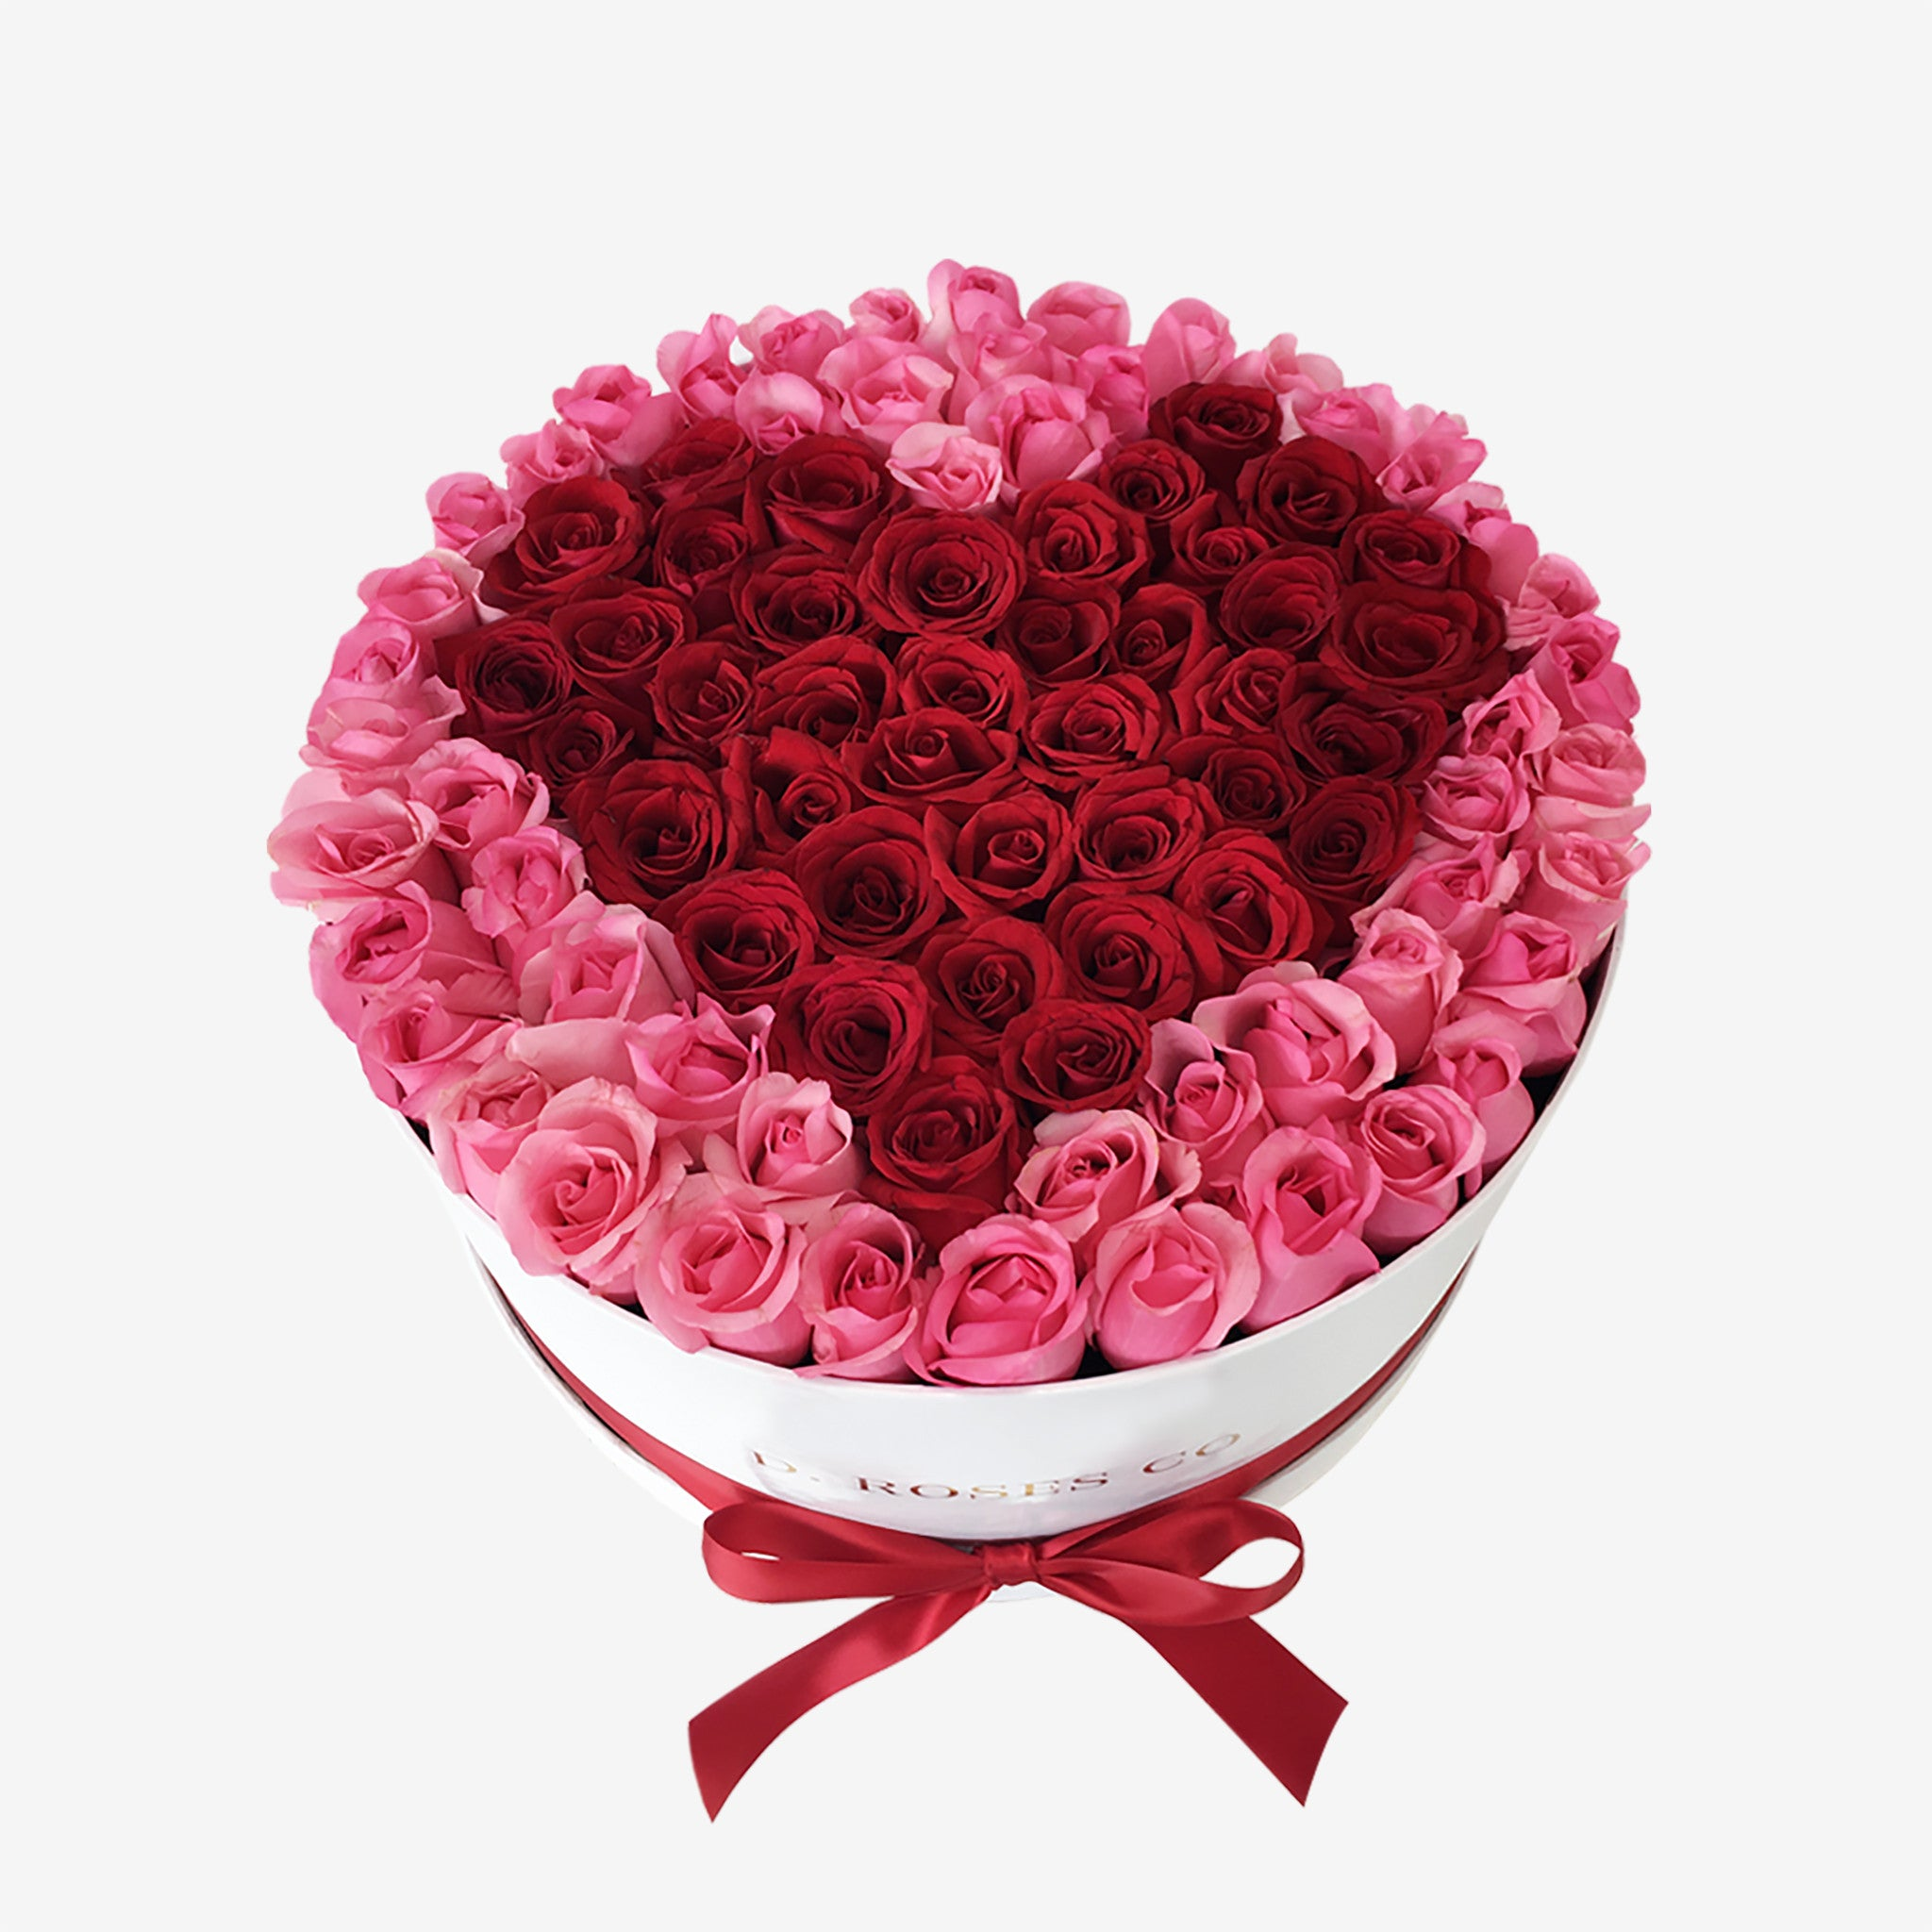 Fresh cut roses arranged to a heart in our signature large box